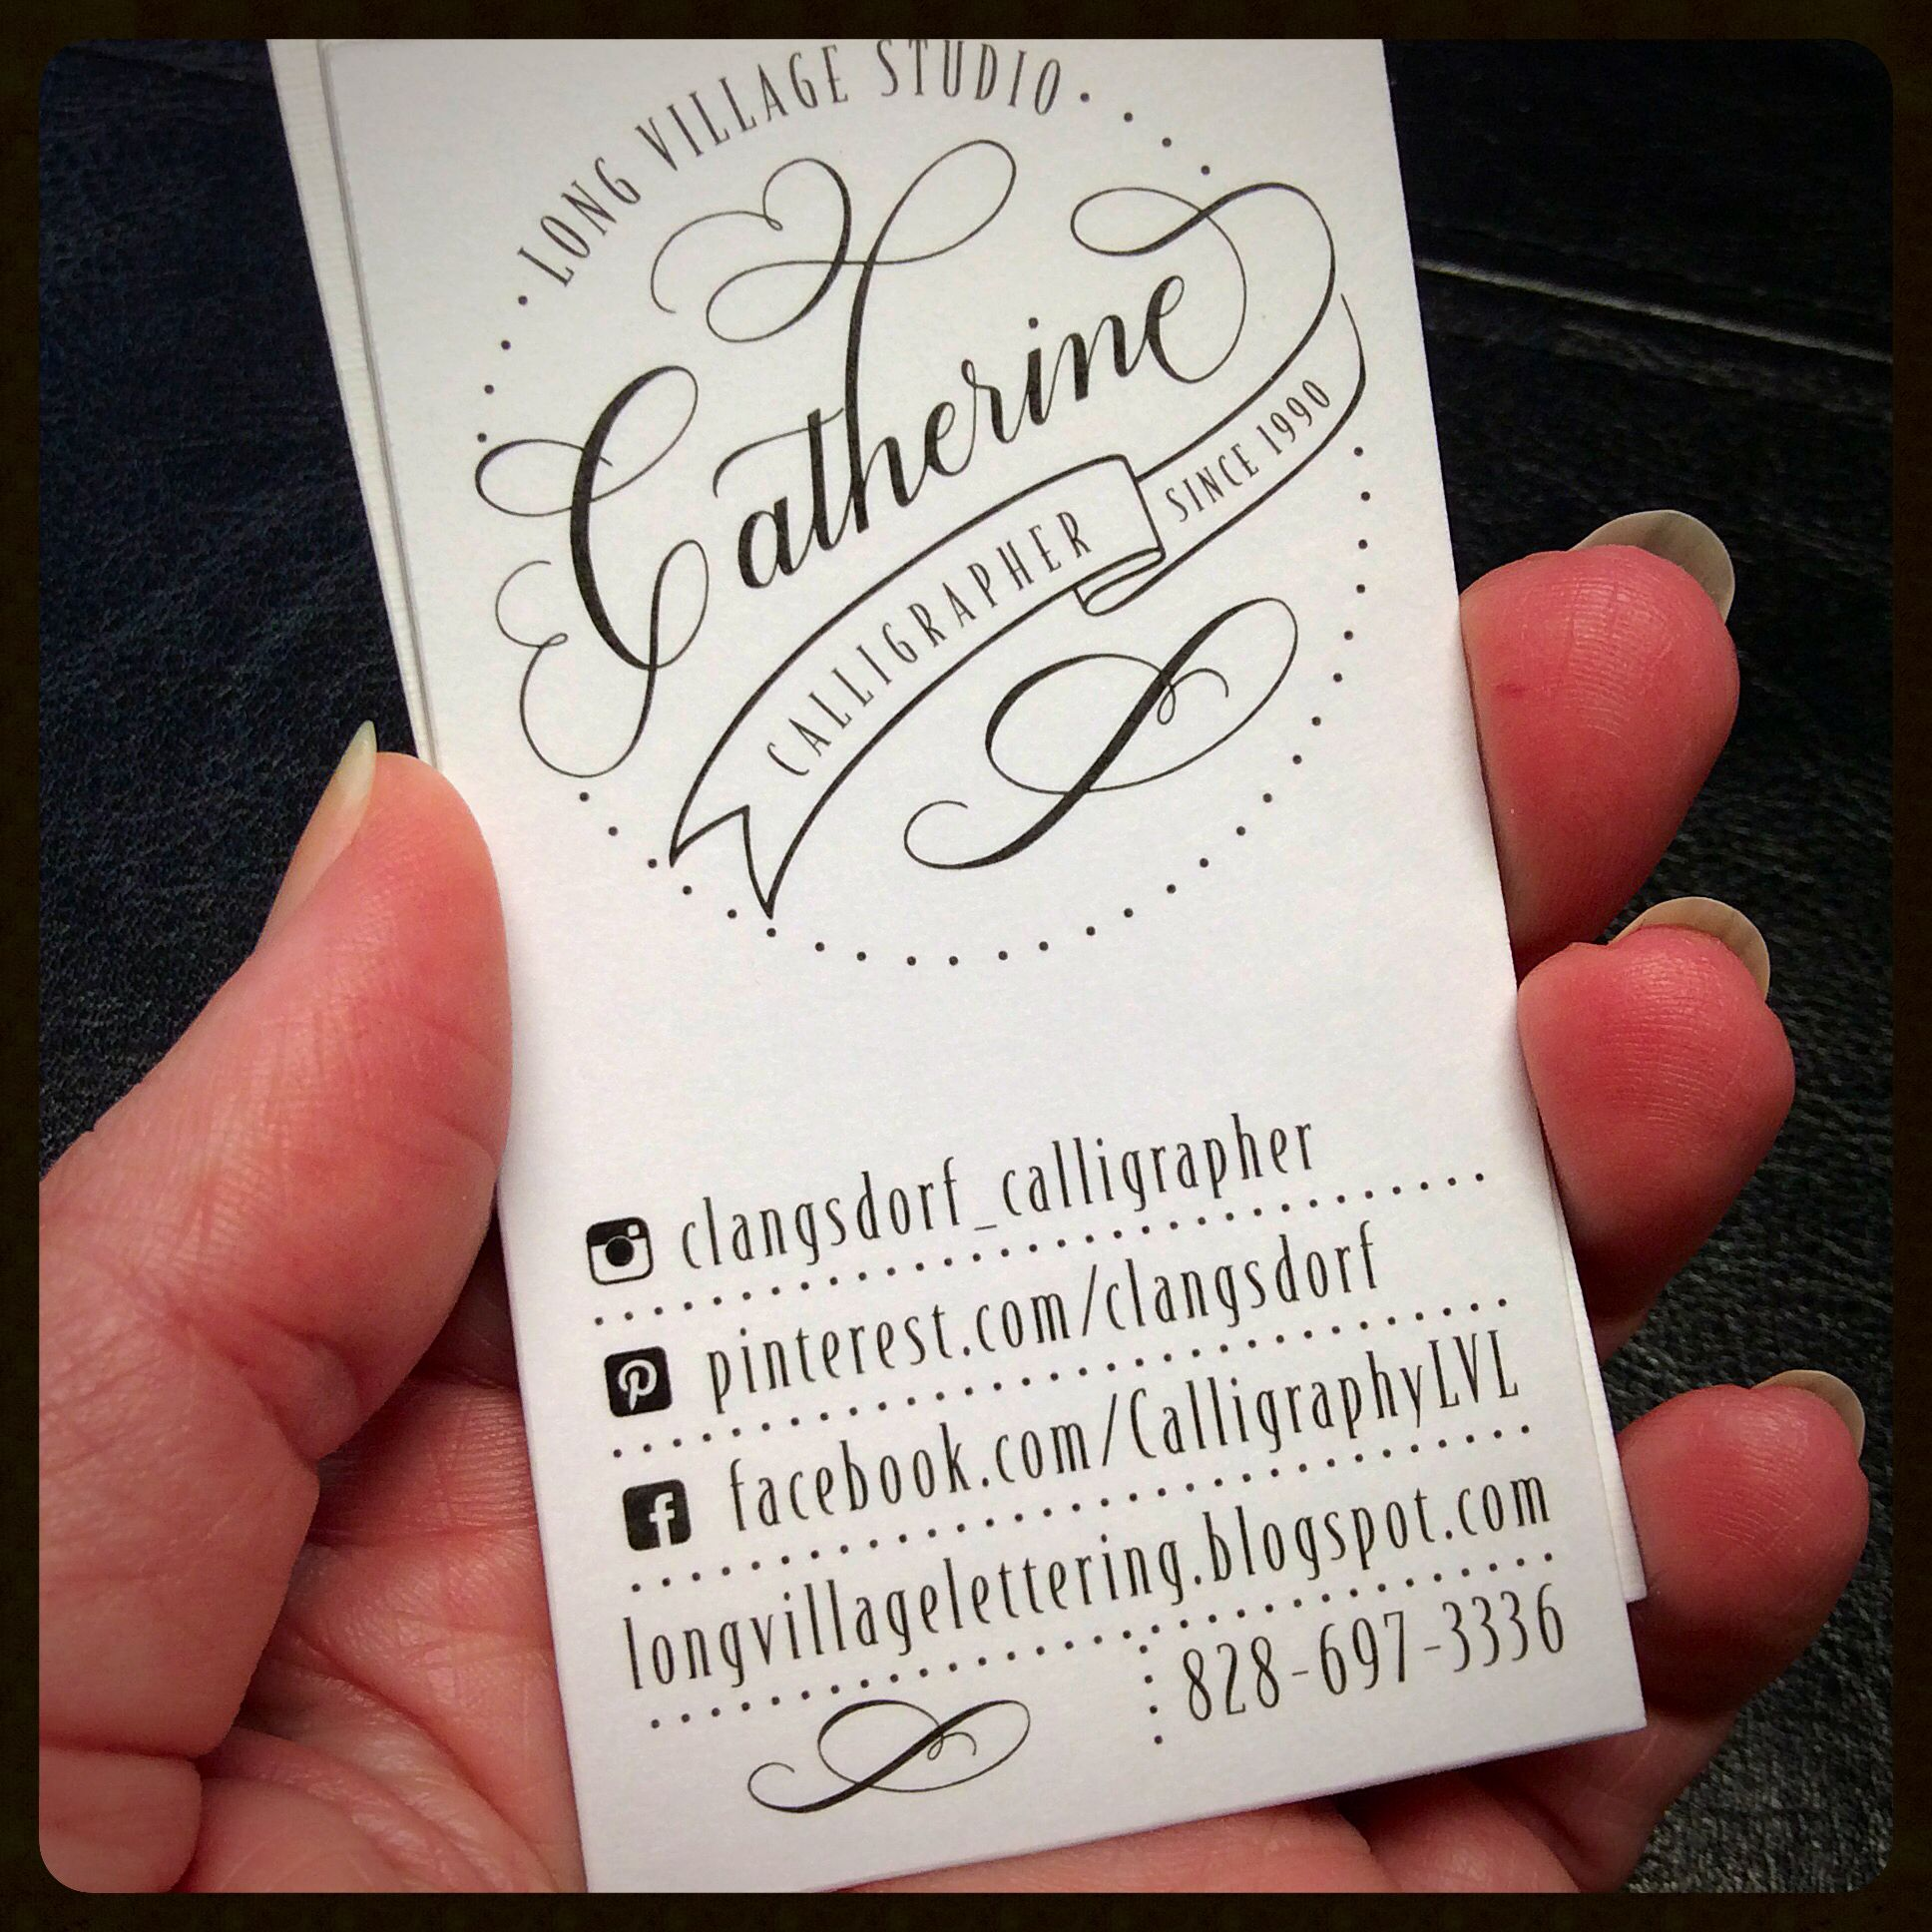 Business Card Design For Calligrapher Long Village Studio Lettering And Calligraphy Lettering Calligraphy Styles Calligrapher